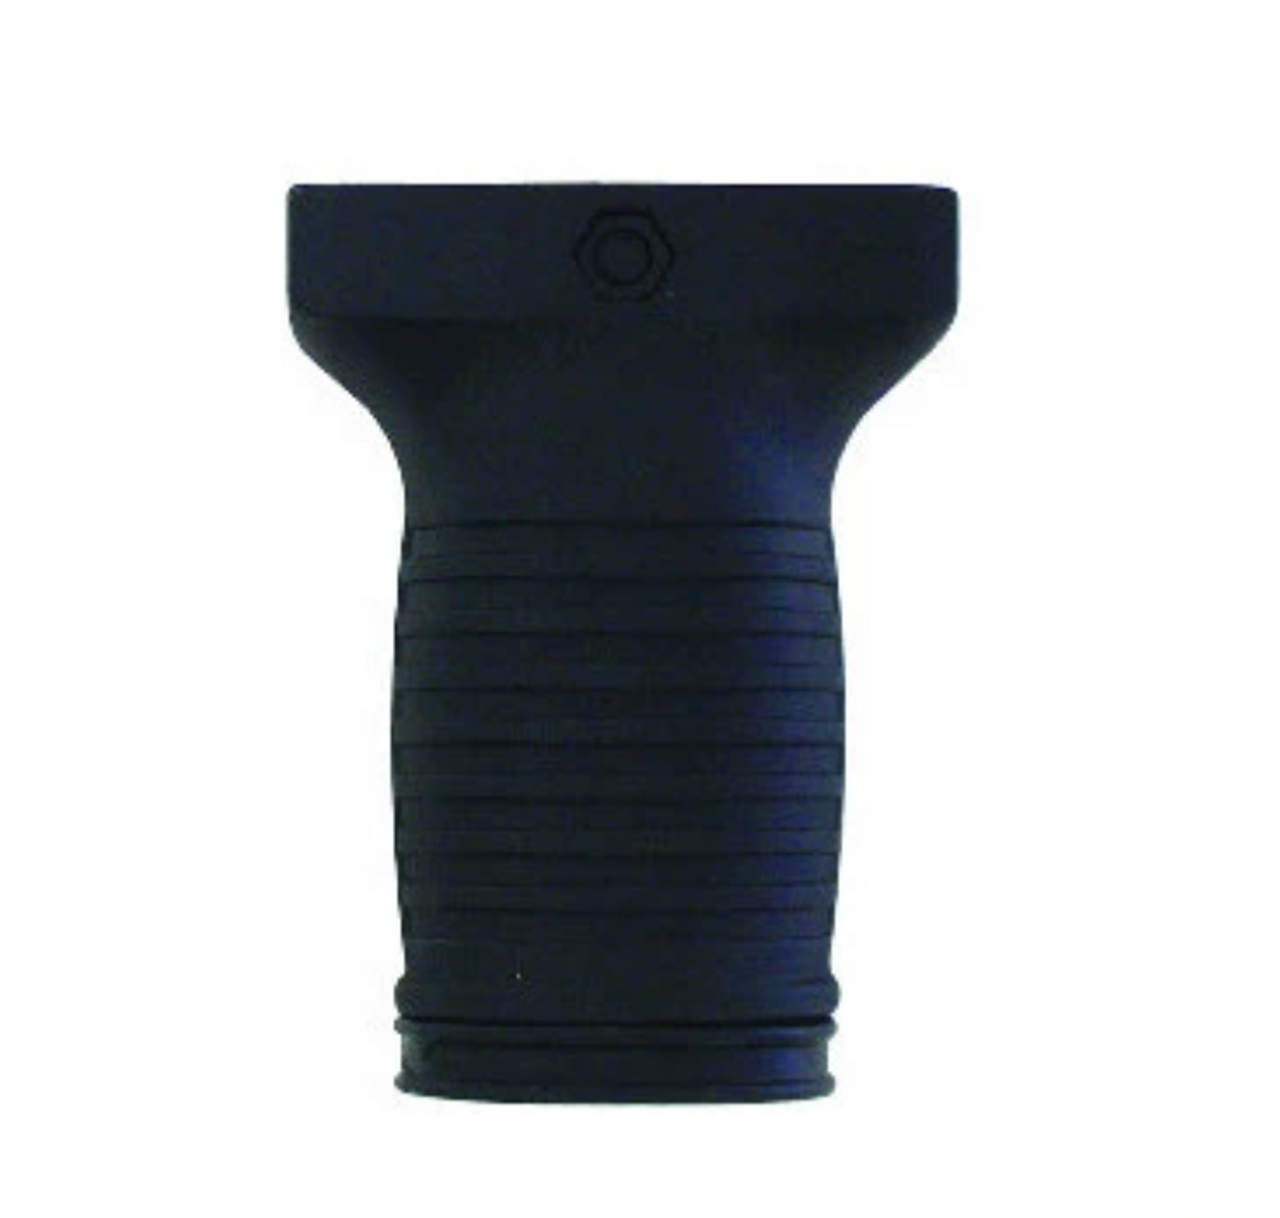 VERTICAL TACTICAL GRIP AC 2019S